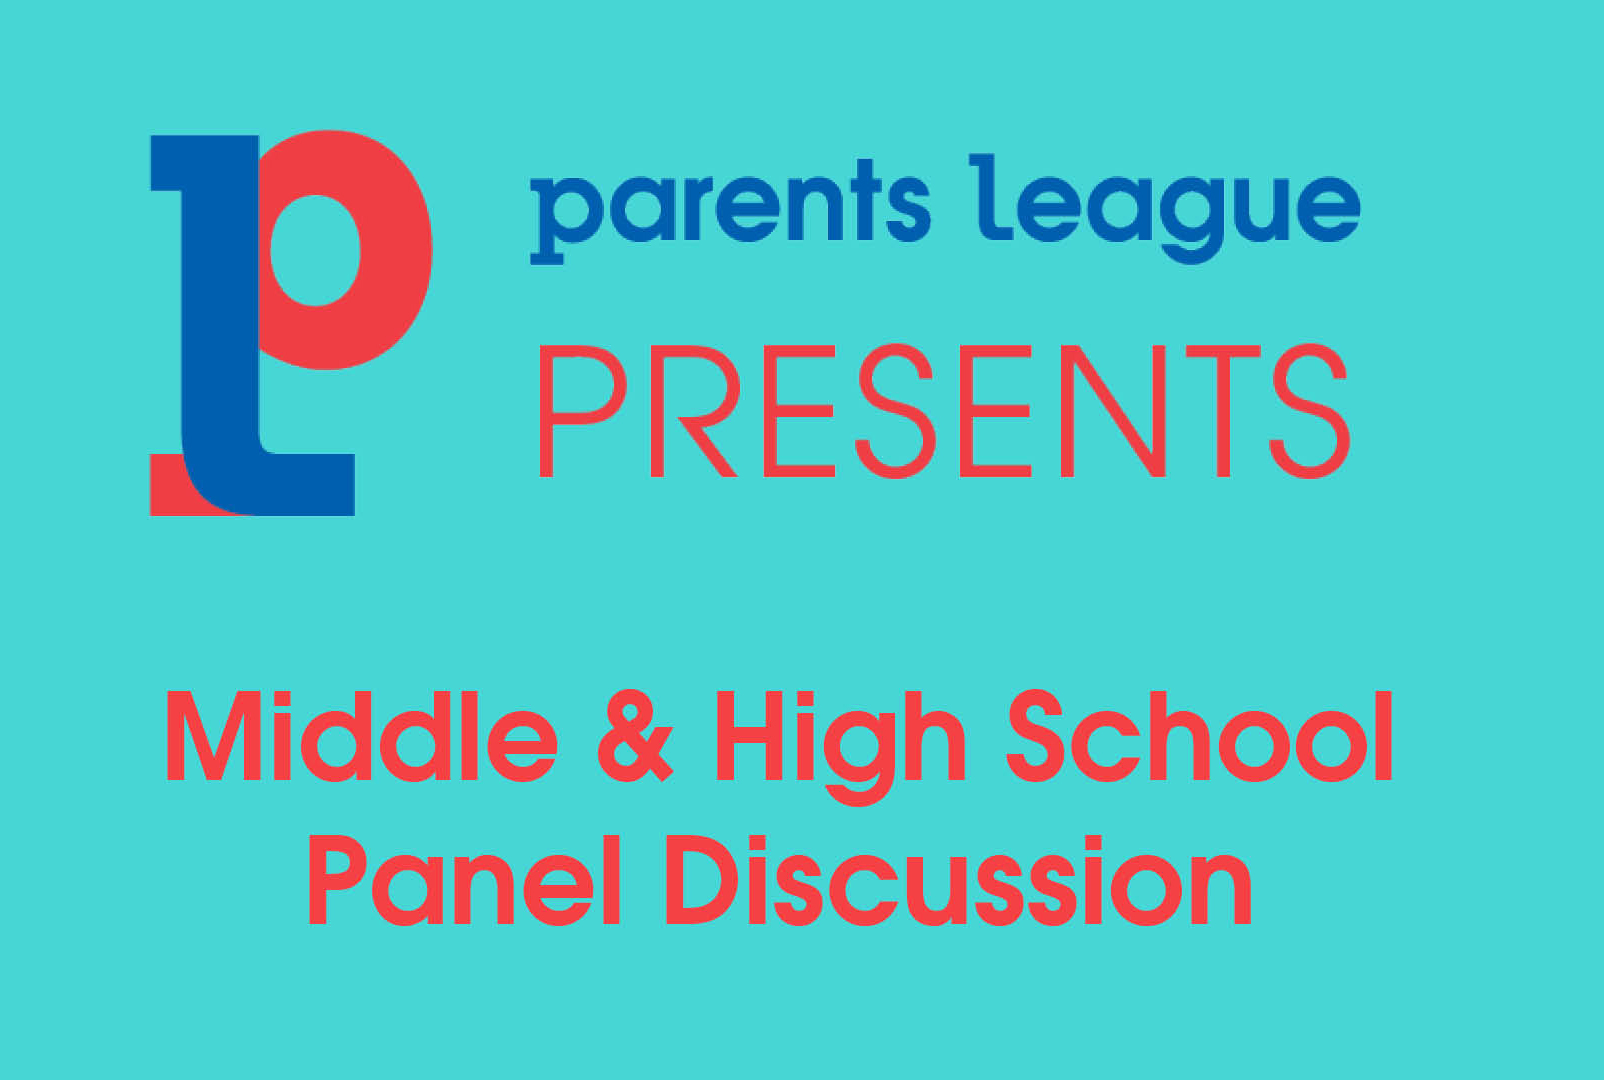 Middle_School_High_School_Panel_Discussion